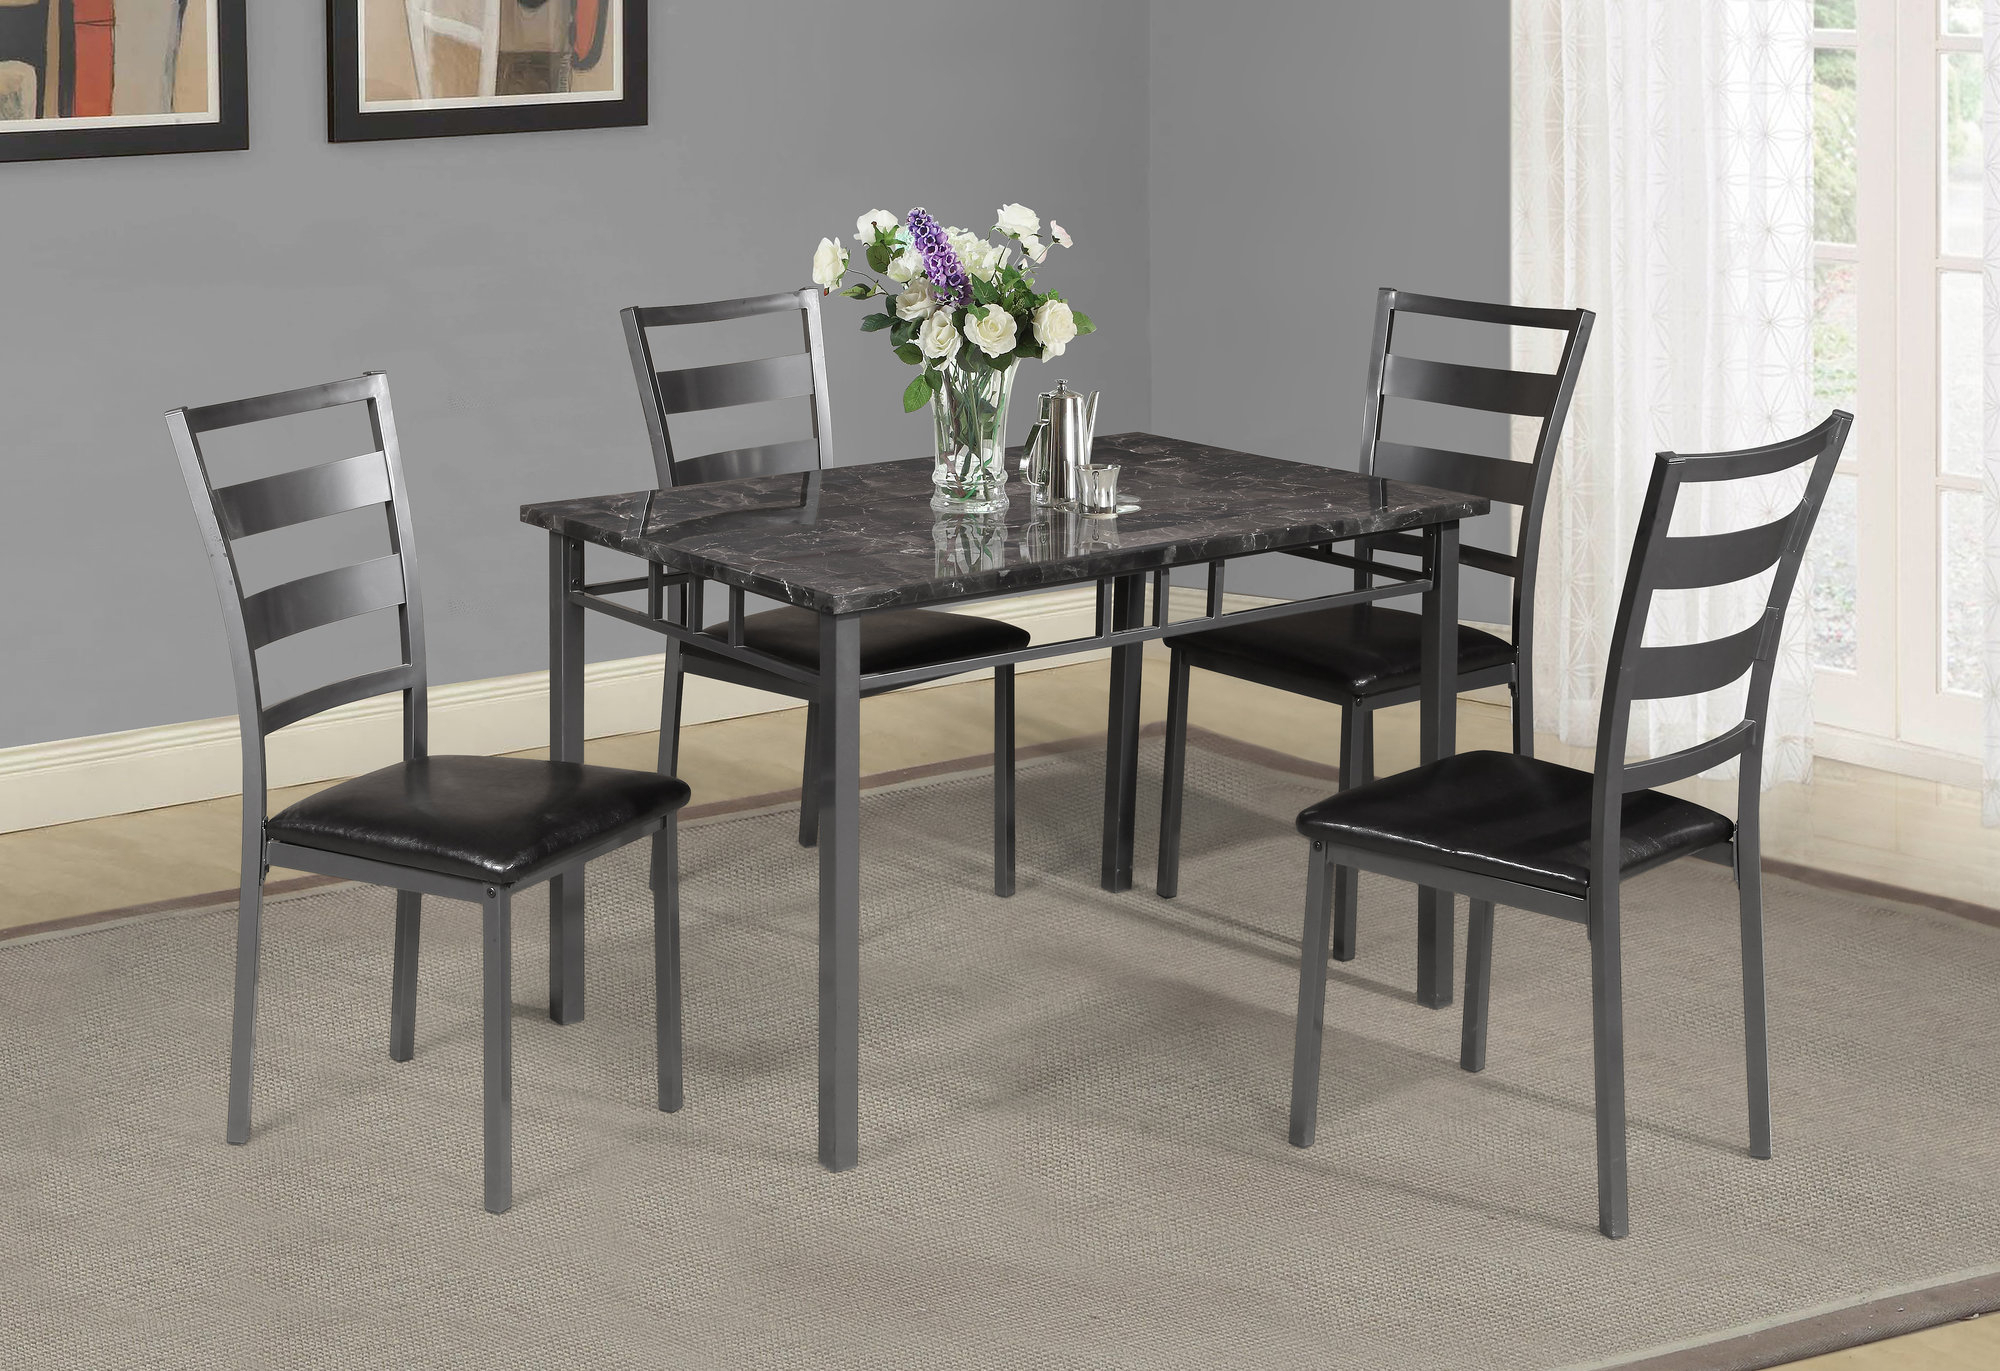 Details About Winston Porter Berke 5 Piece Dining Set Throughout Well Liked Tavarez 5 Piece Dining Sets (Gallery 5 of 20)